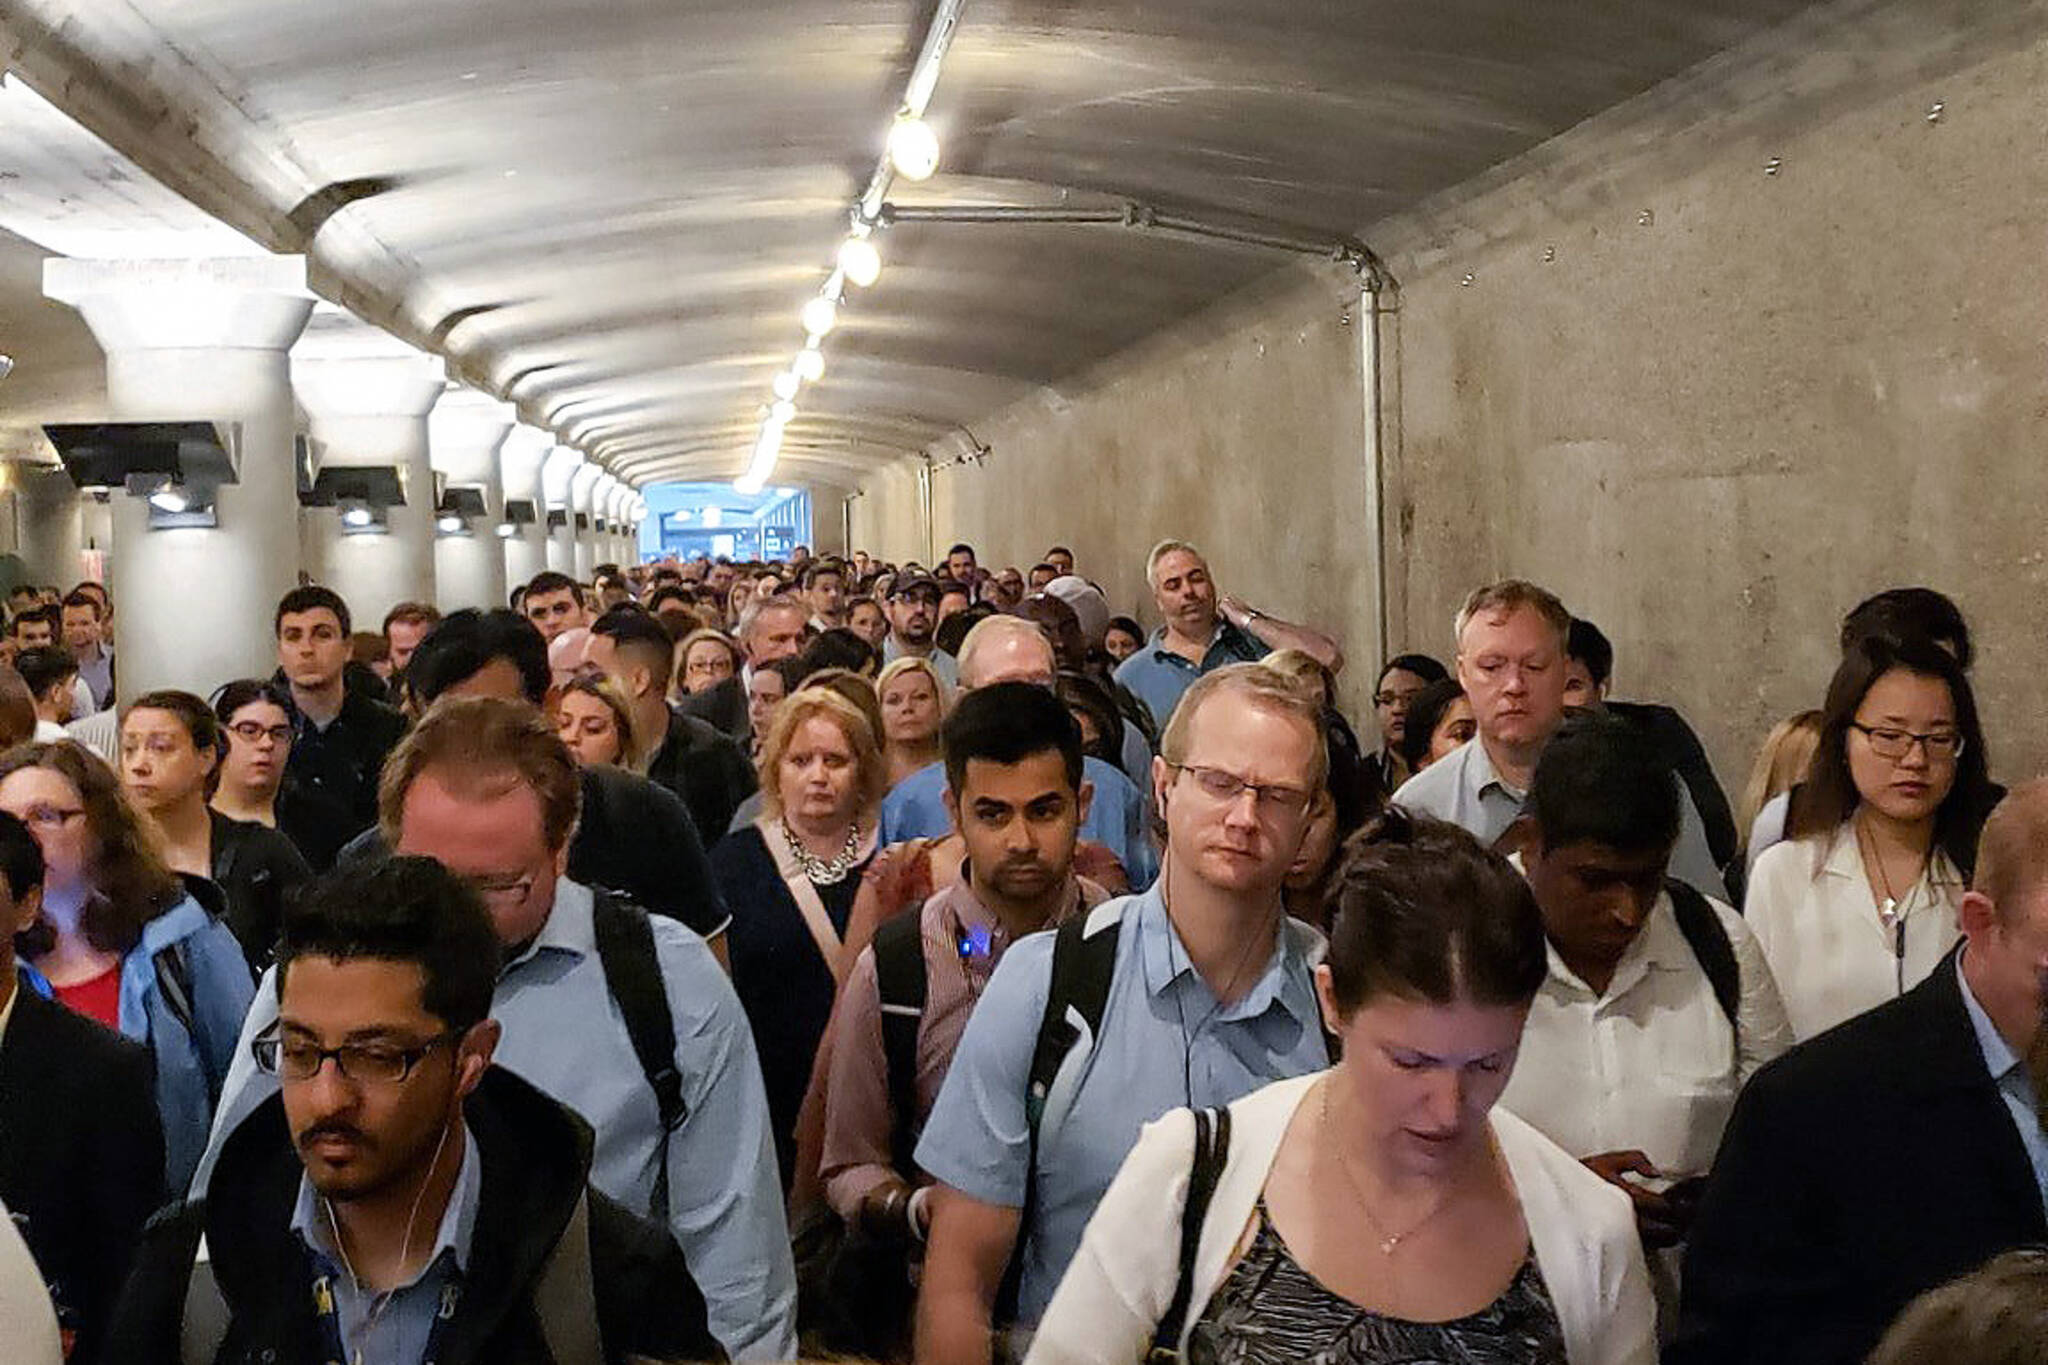 union station overcrowding